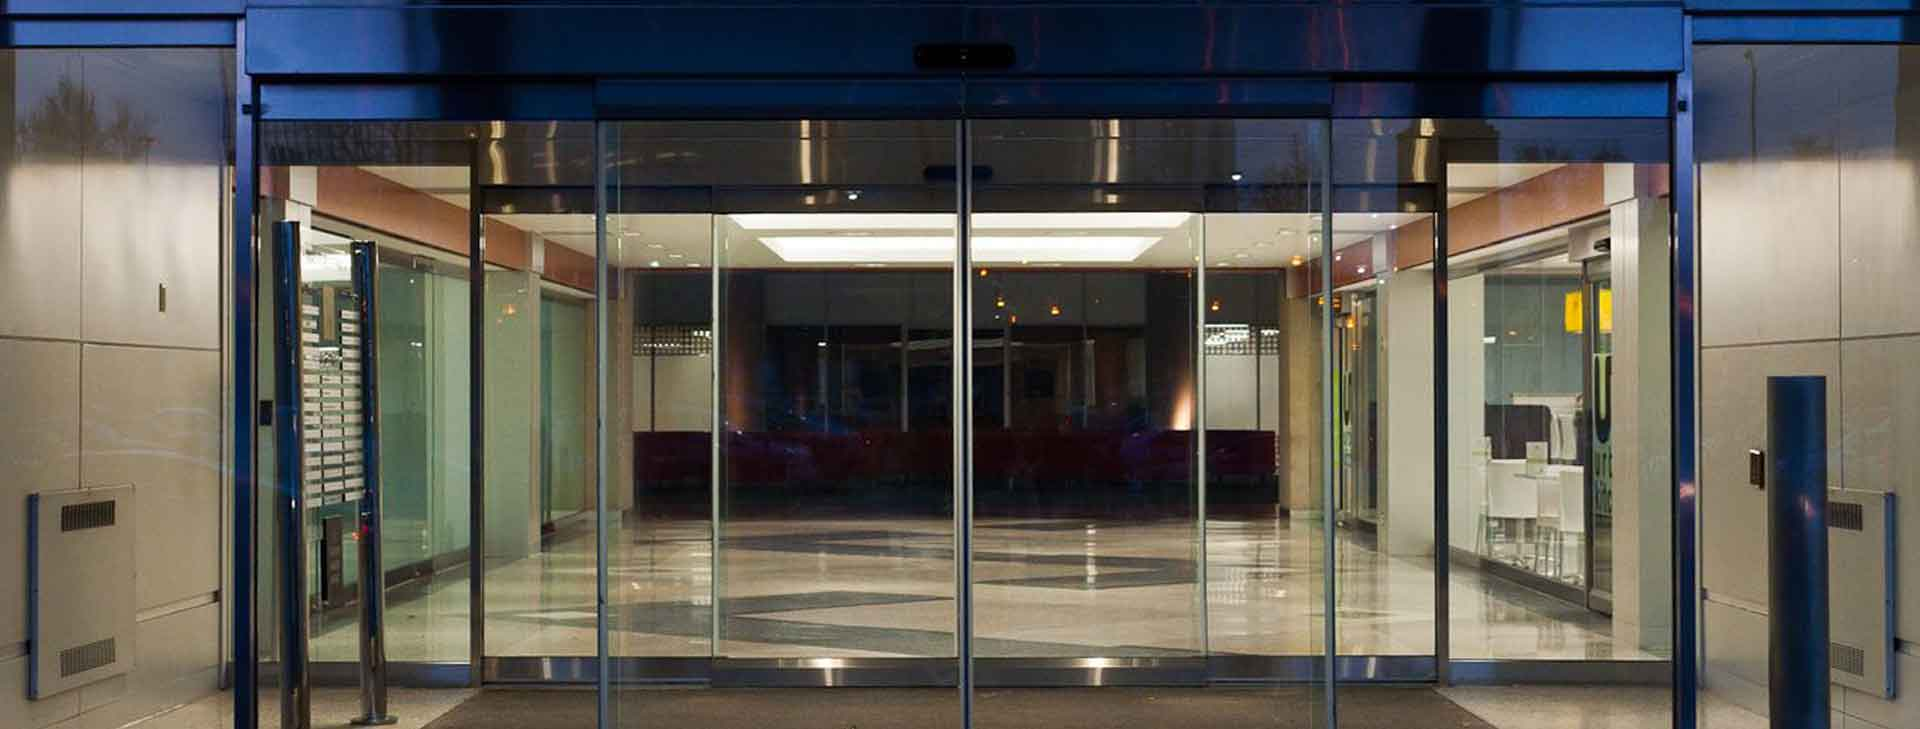 5 advantages of automatic glass doors in commercial spaces for Entrance door with window